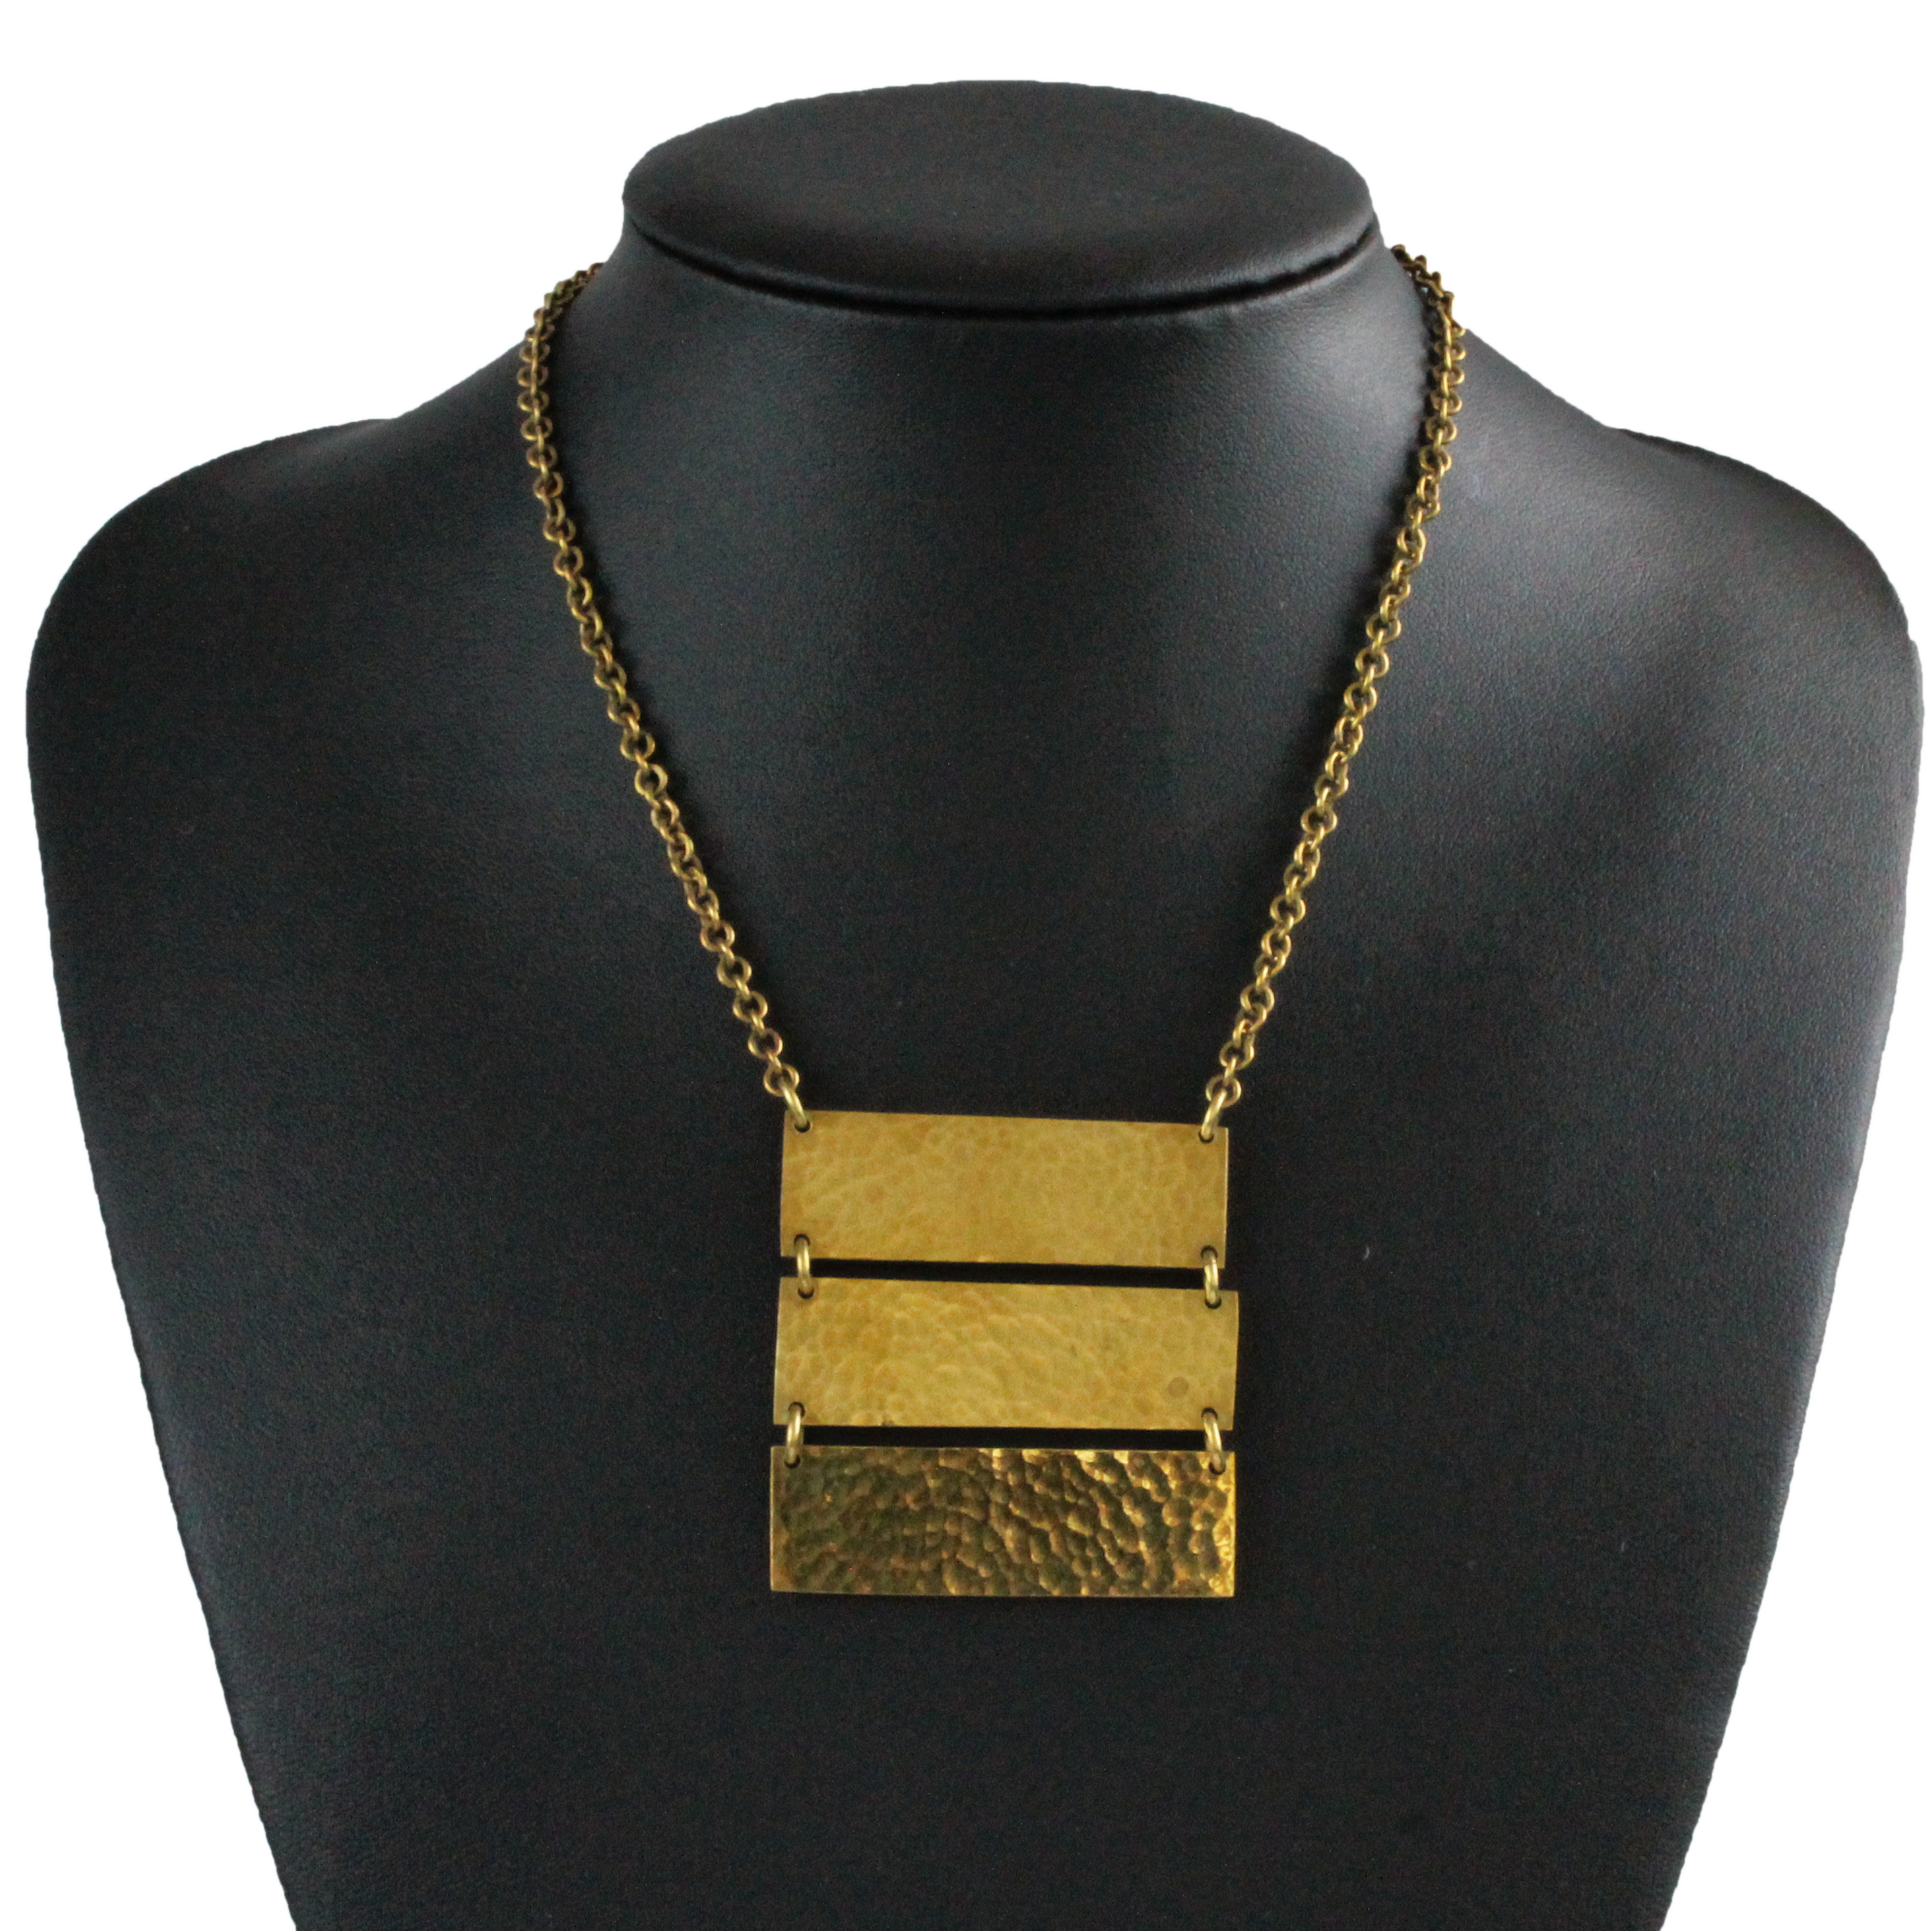 African handmade brass necklace, 3 bars, black display